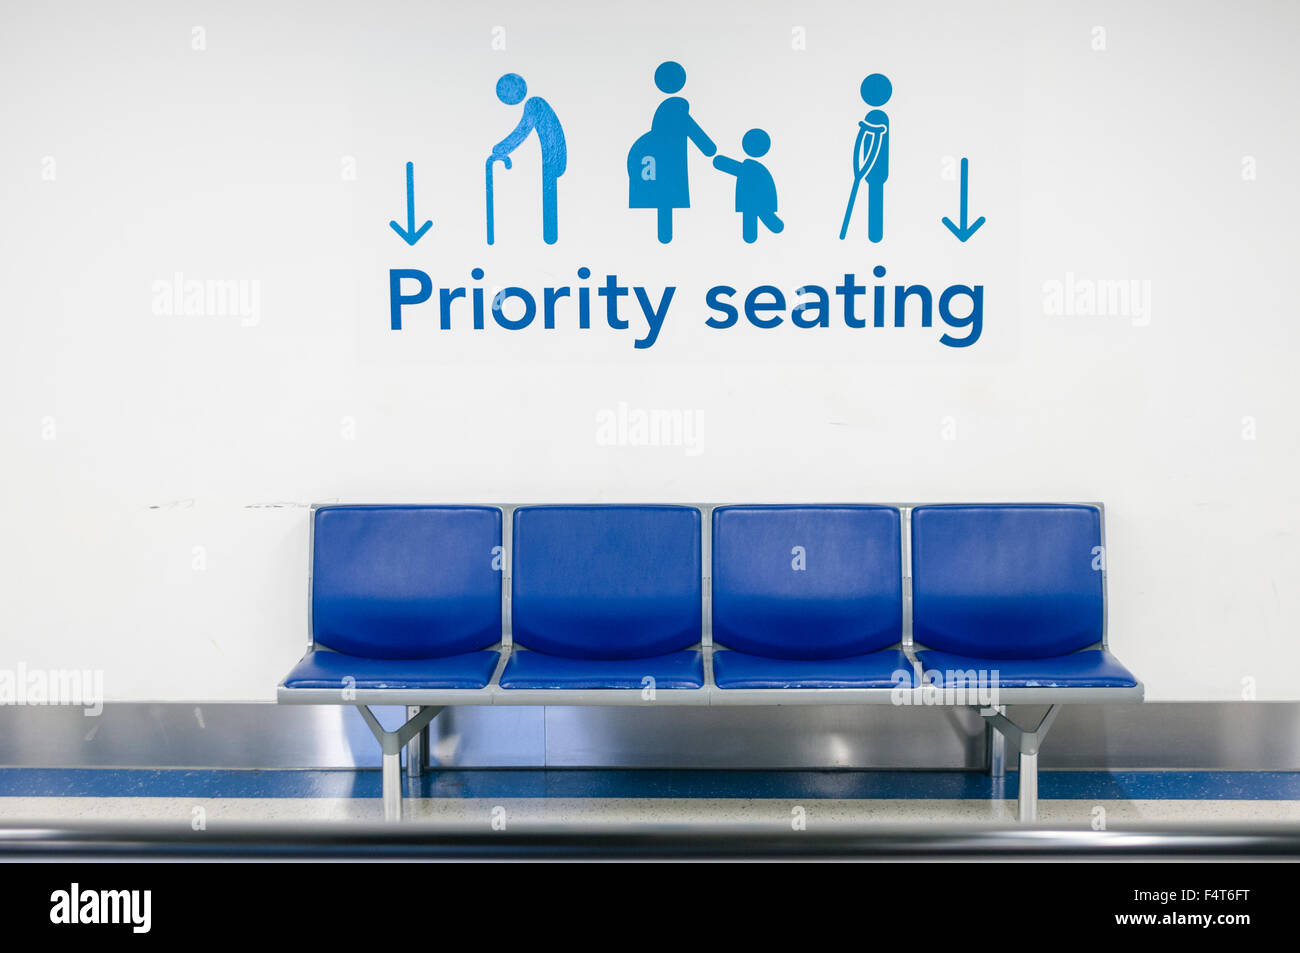 Priority seating  at an airport for elderly, pregnant ladies or people with disabilities. - Stock Image